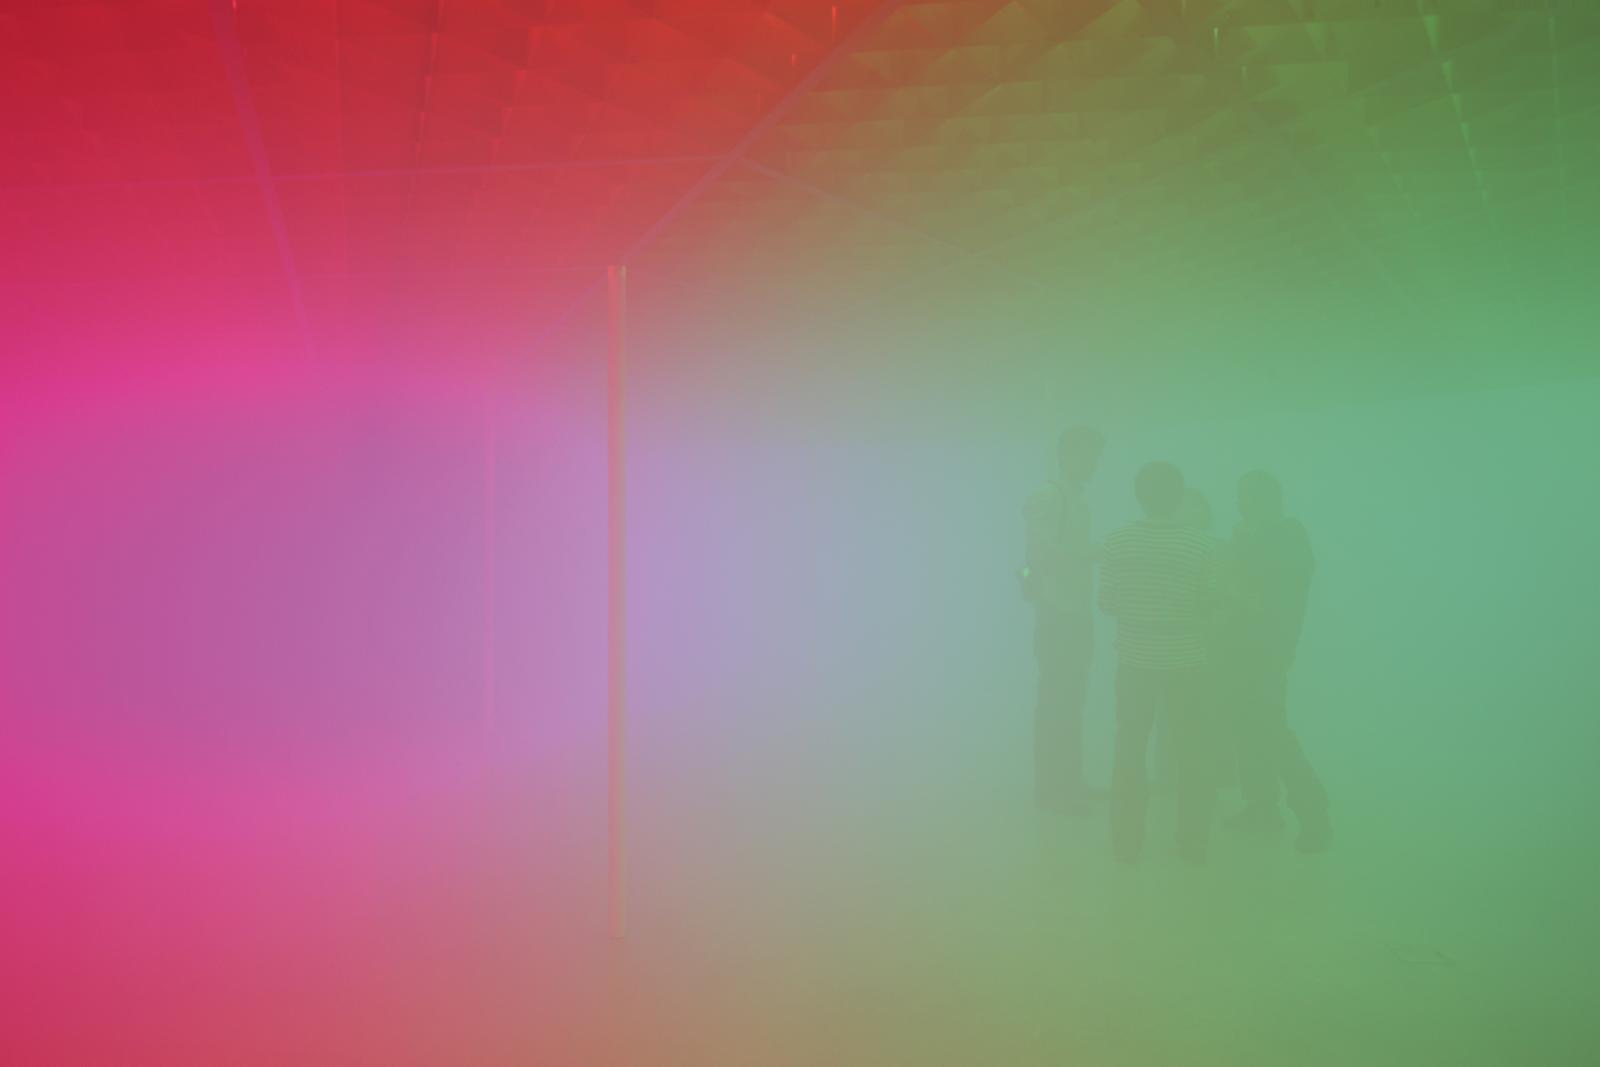 Your Atmospheric Colo Artwork Studio Olafur Eliasson